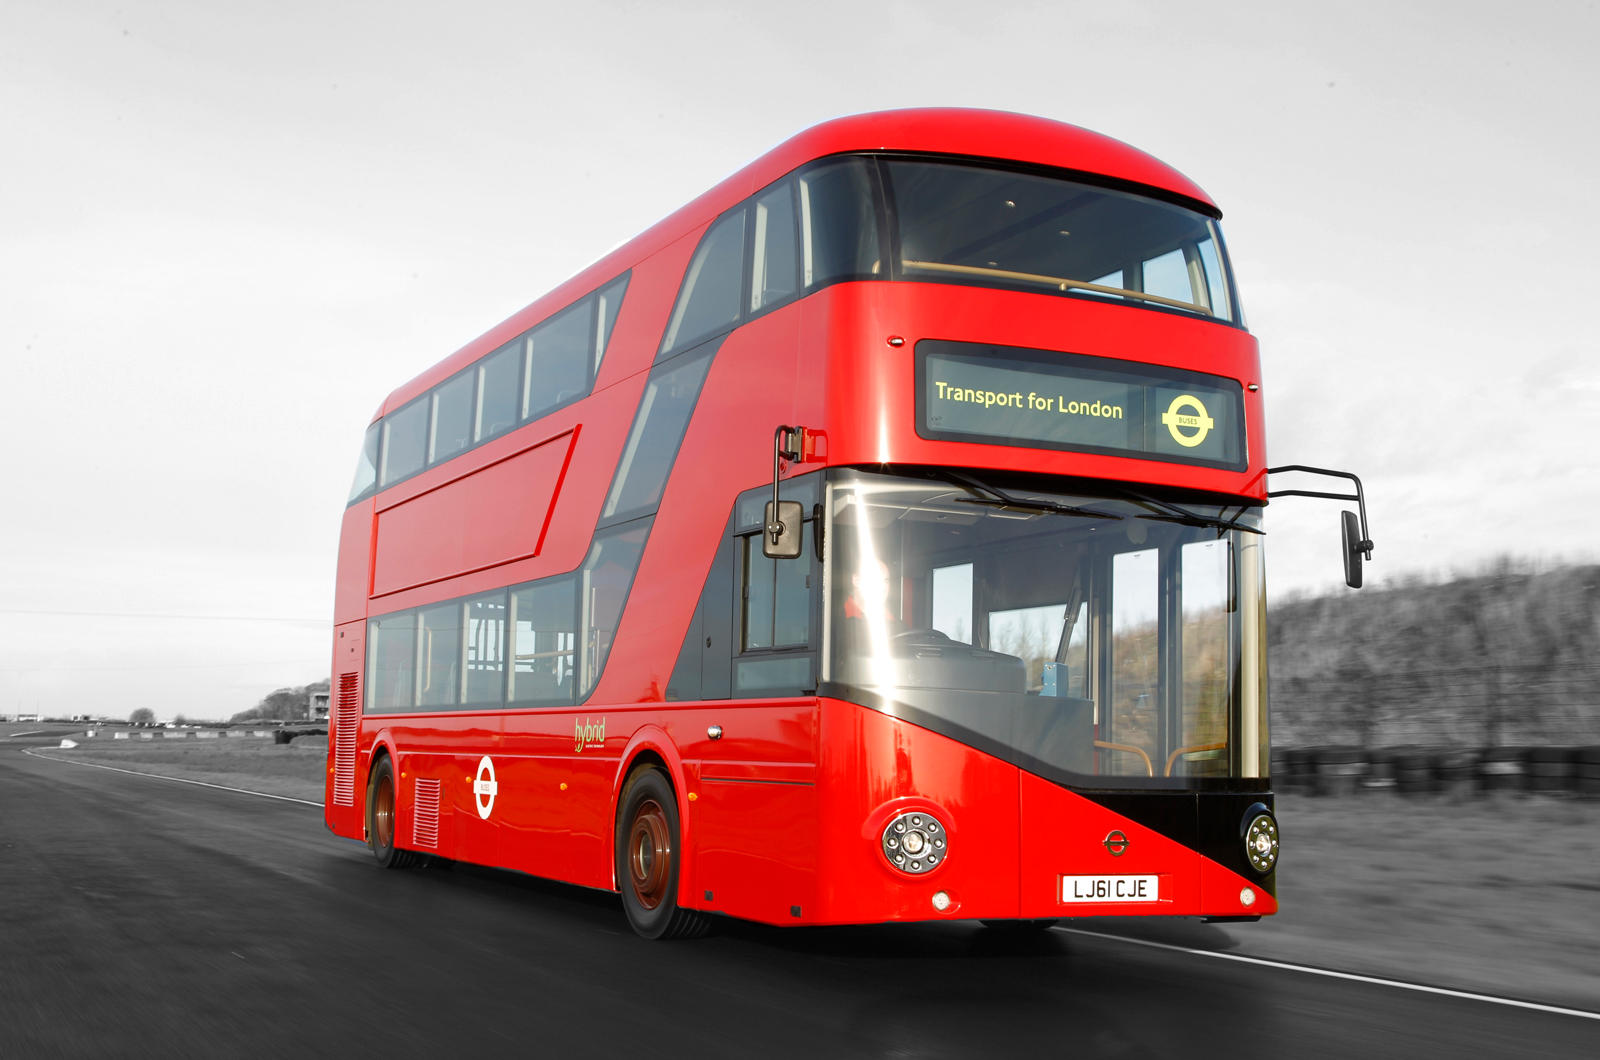 http://3.bp.blogspot.com/-Ccz9TvRMAZE/UFRGc0qalJI/AAAAAAAADOY/3CsnNfqLg8M/s1600/London-red-bus-black-and-white-with-colour-picture_2.jpg